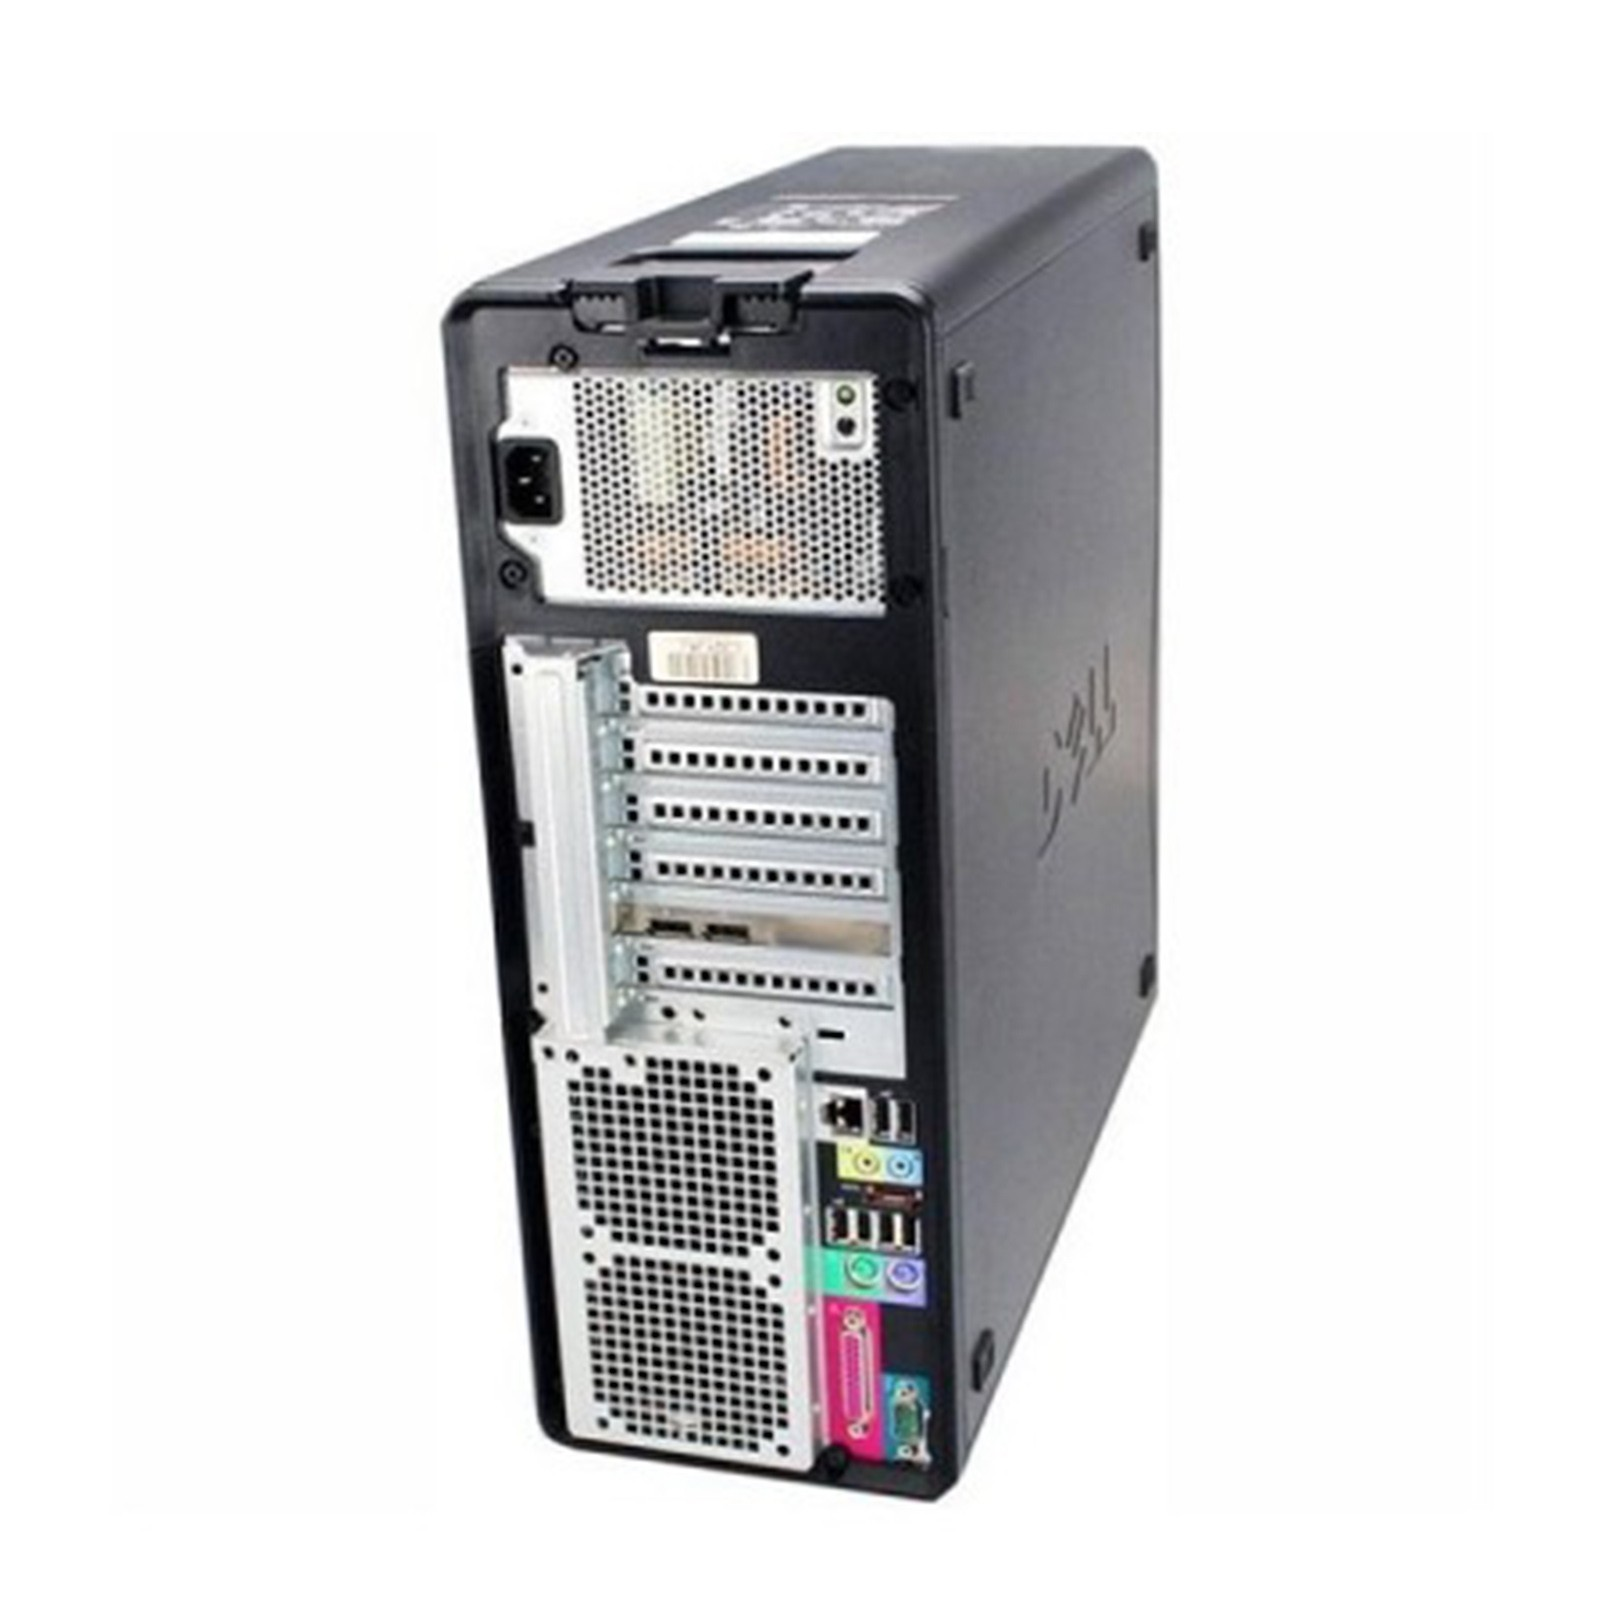 Wiring Diagram For Dell 690 Power Supply Wiring Diagram Libraries AC To AC  Transformer Diagram Wiring Diagram For Dell 690 Power Supply